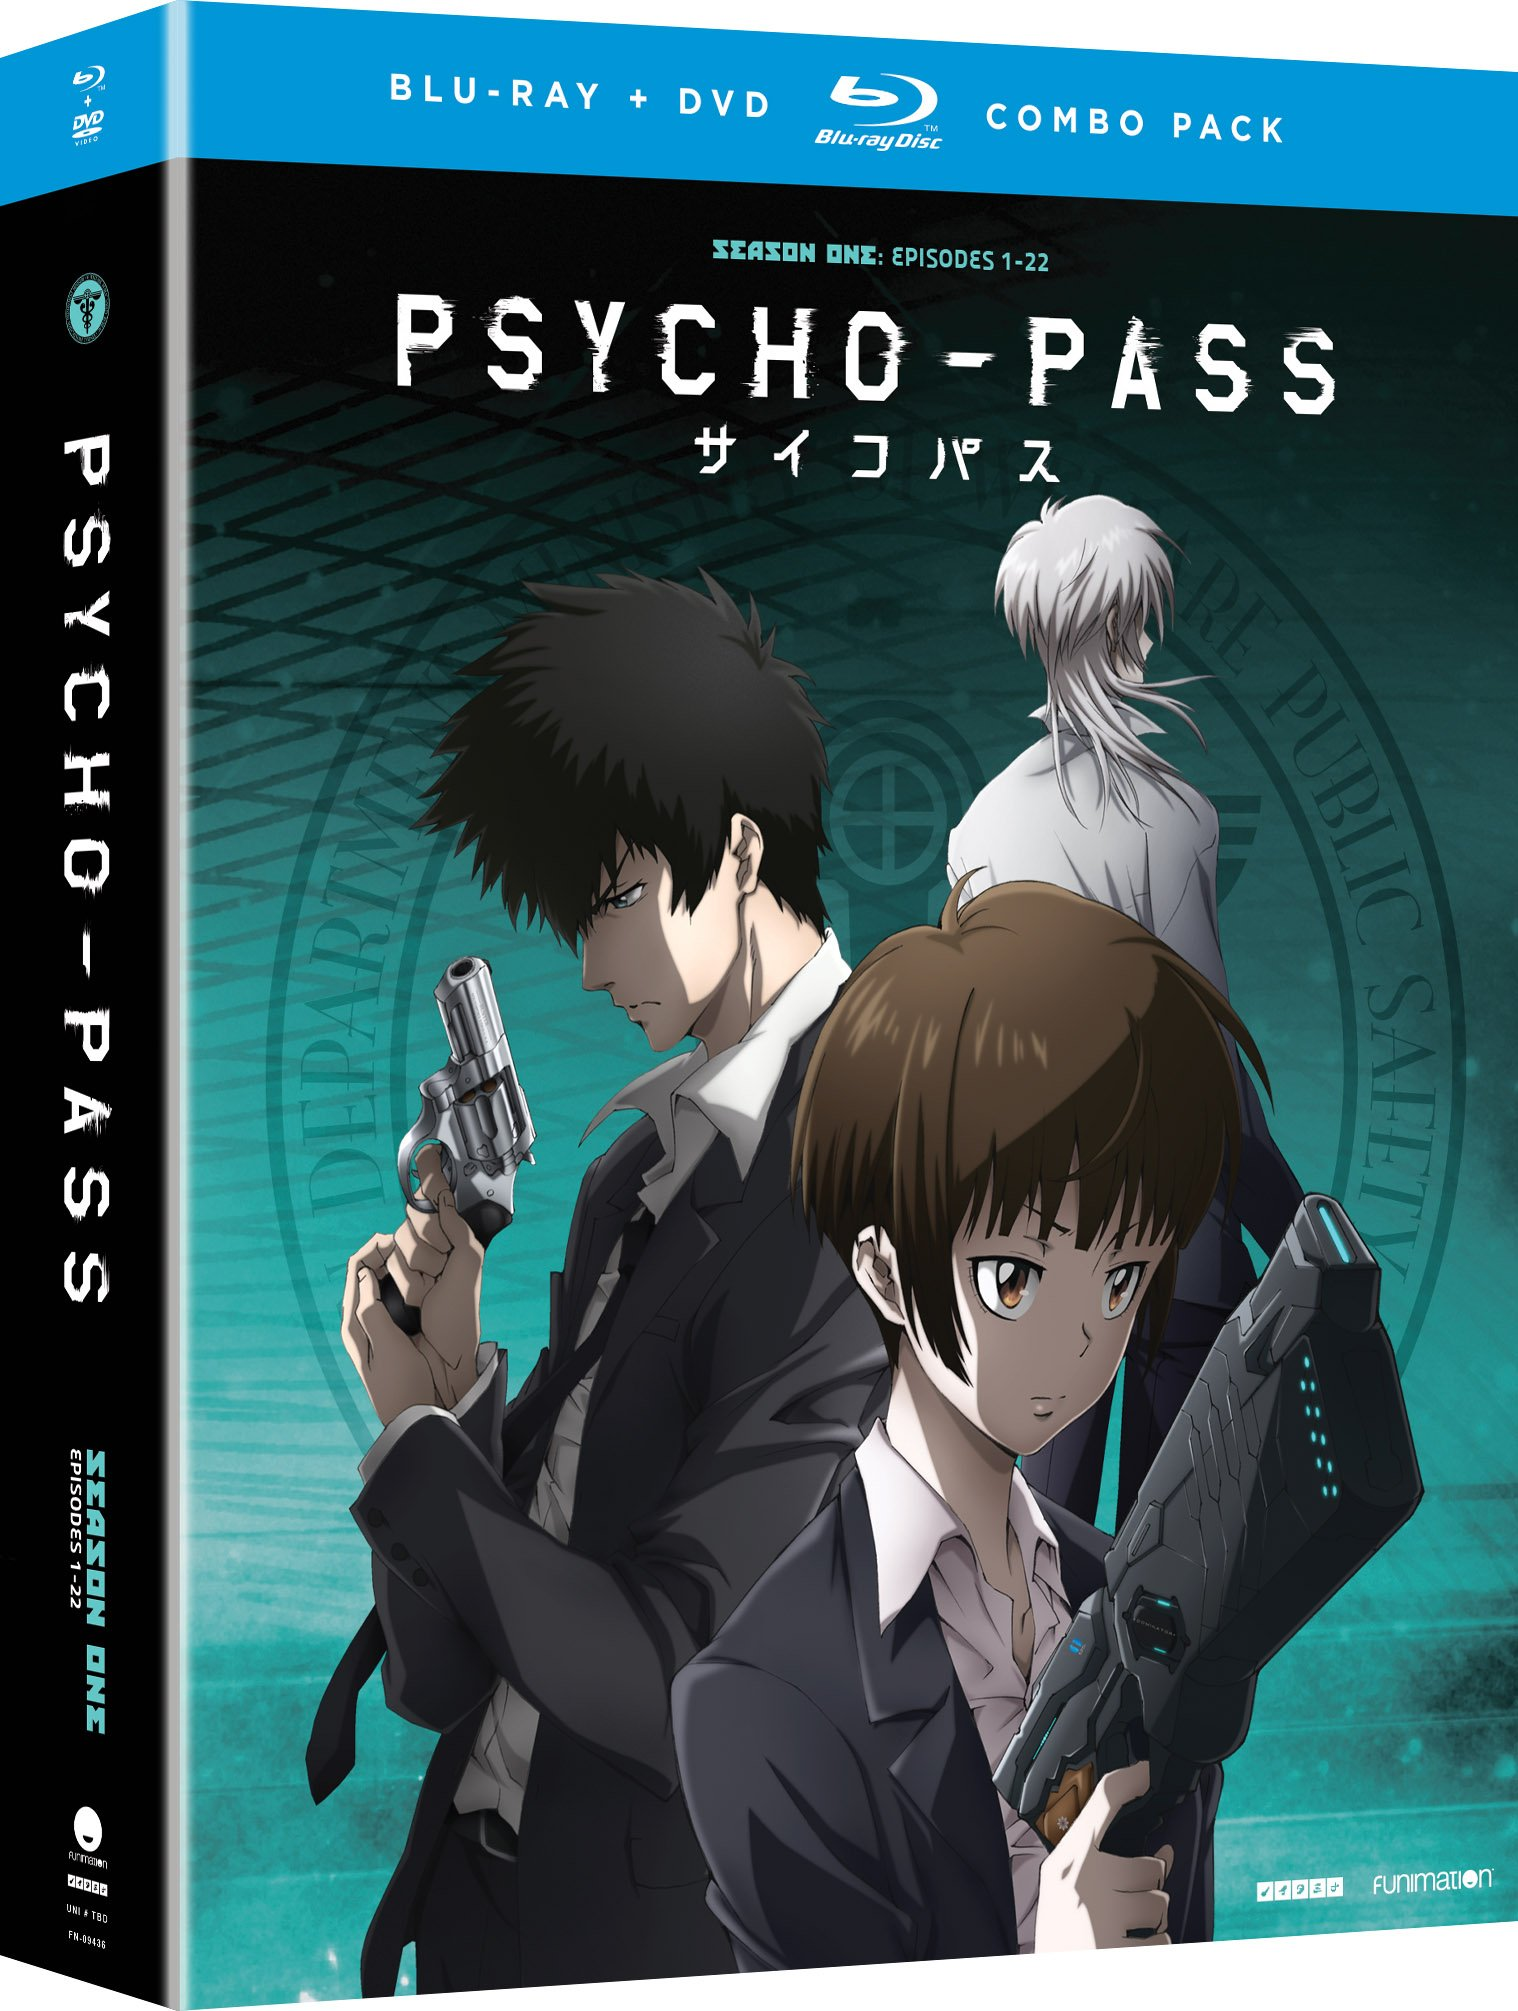 Blu-ray : Psycho-Pass - Season One (With DVD, Boxed Set, 8 Disc)